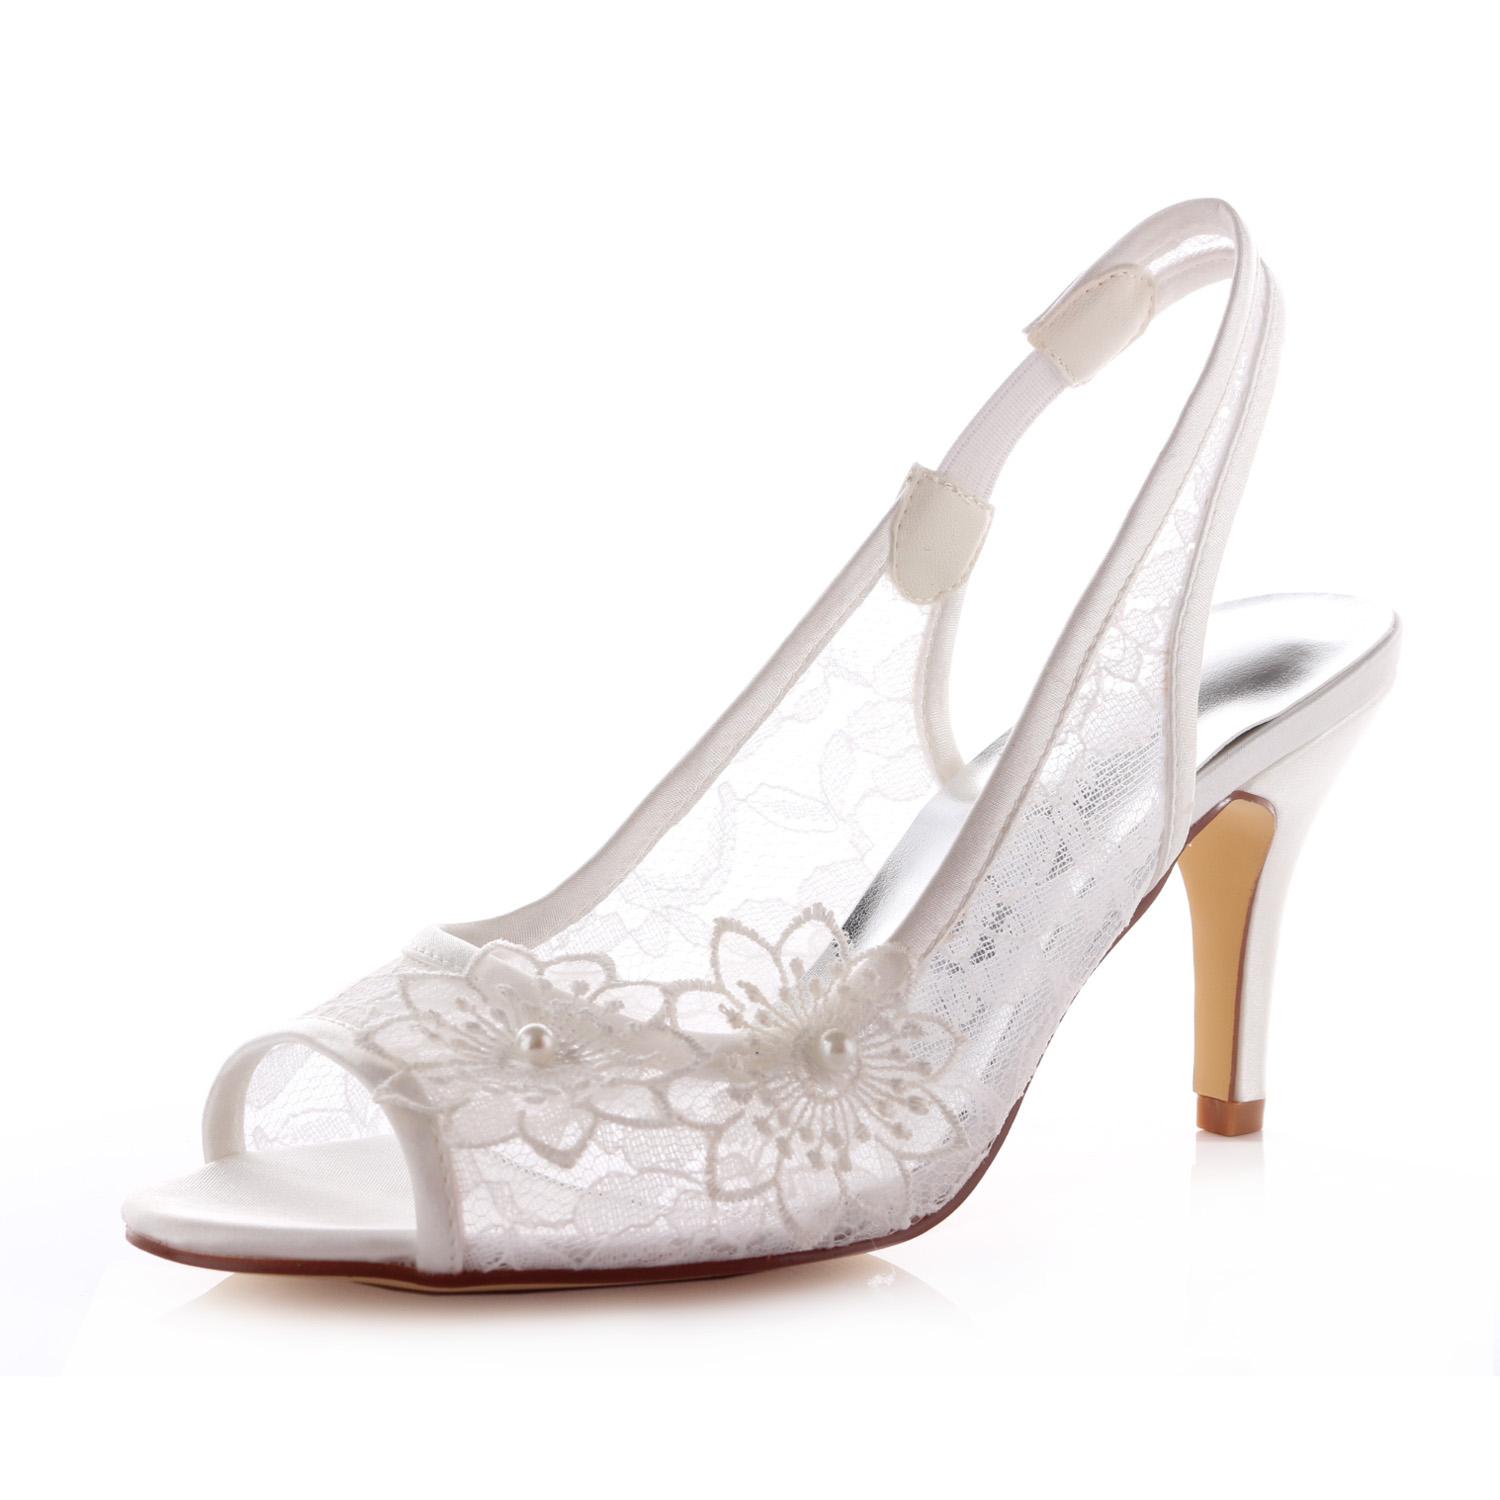 High heels Women Sexy shoes bride Wedding Shoes Evening Prom Shoes Summer Fashion Dress Sandals<br><br>Aliexpress